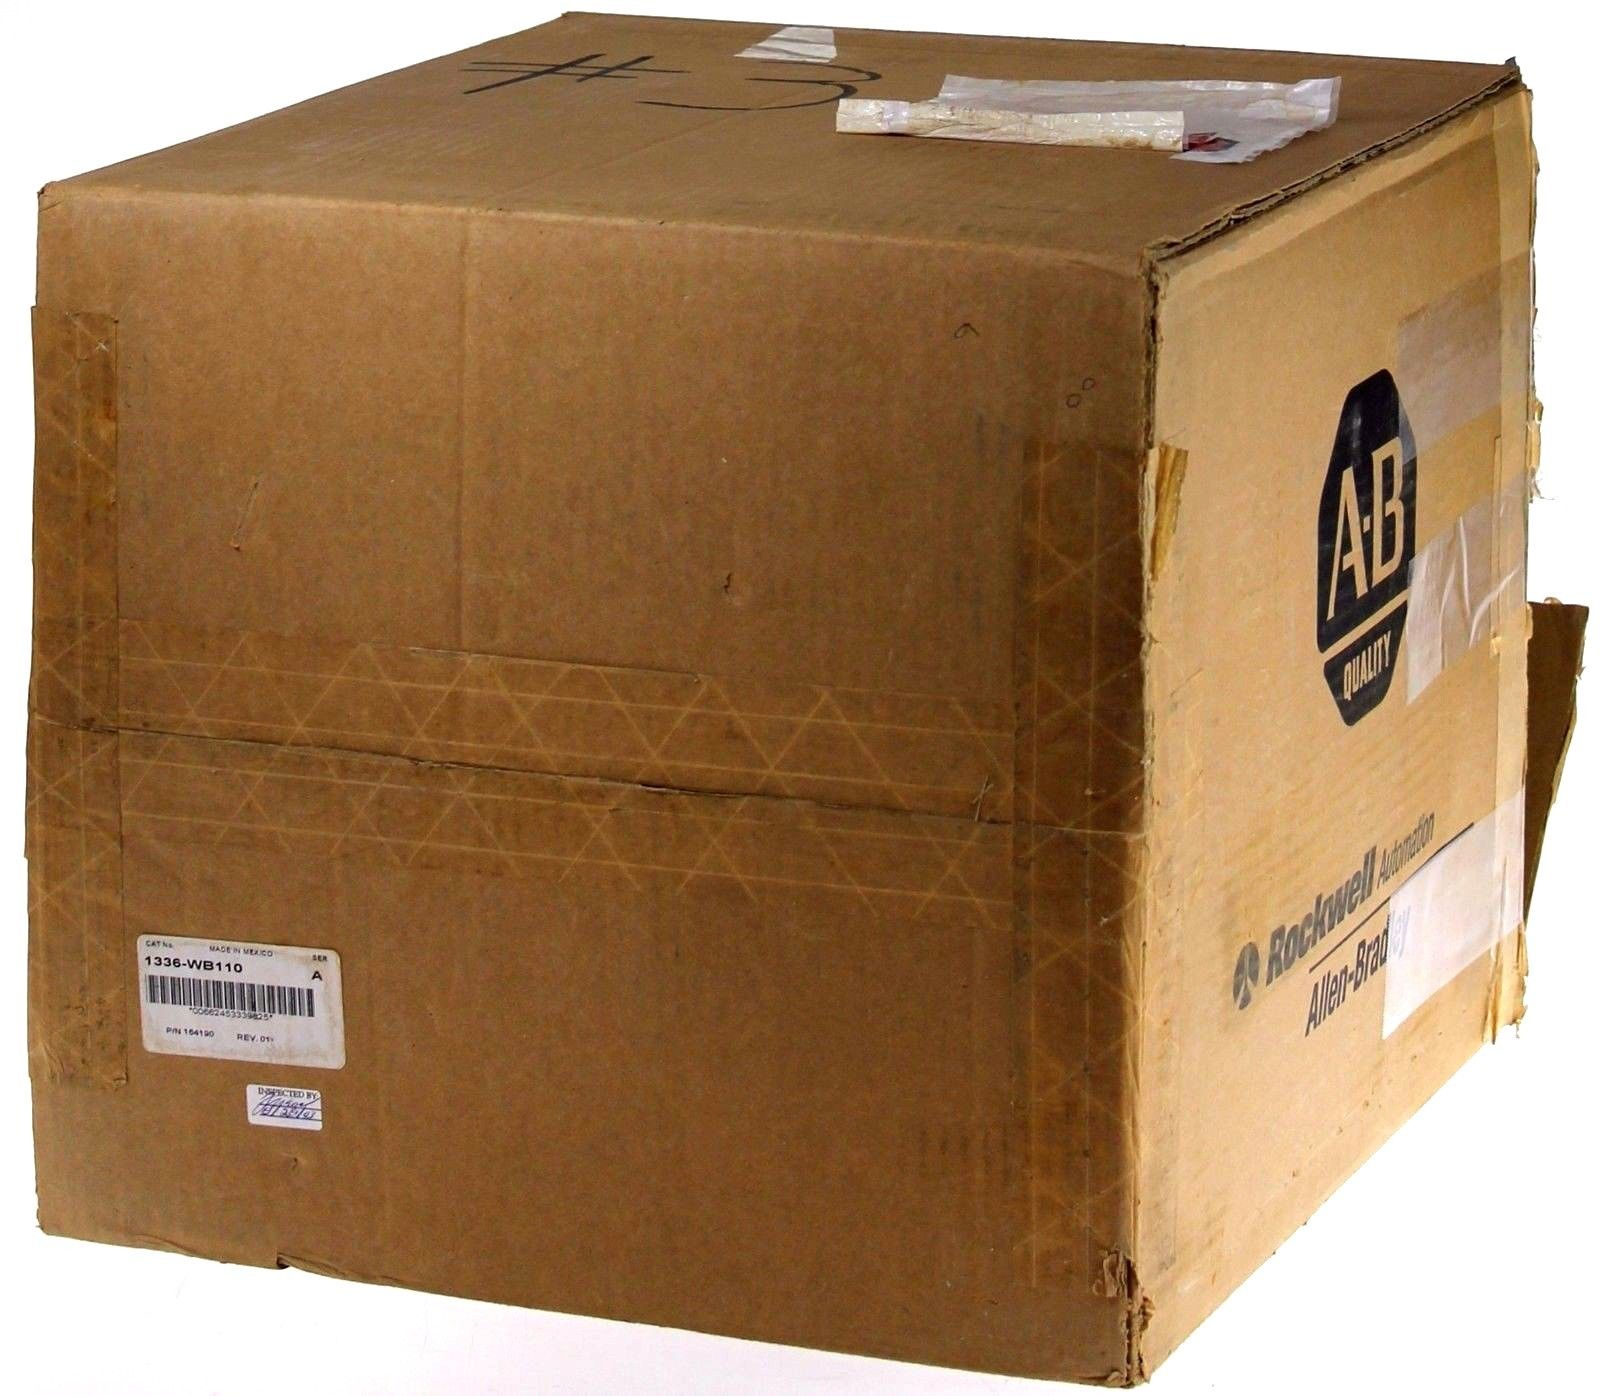 NEW Allen Bradley Bulletin 1336-WB110 Braking Chopper